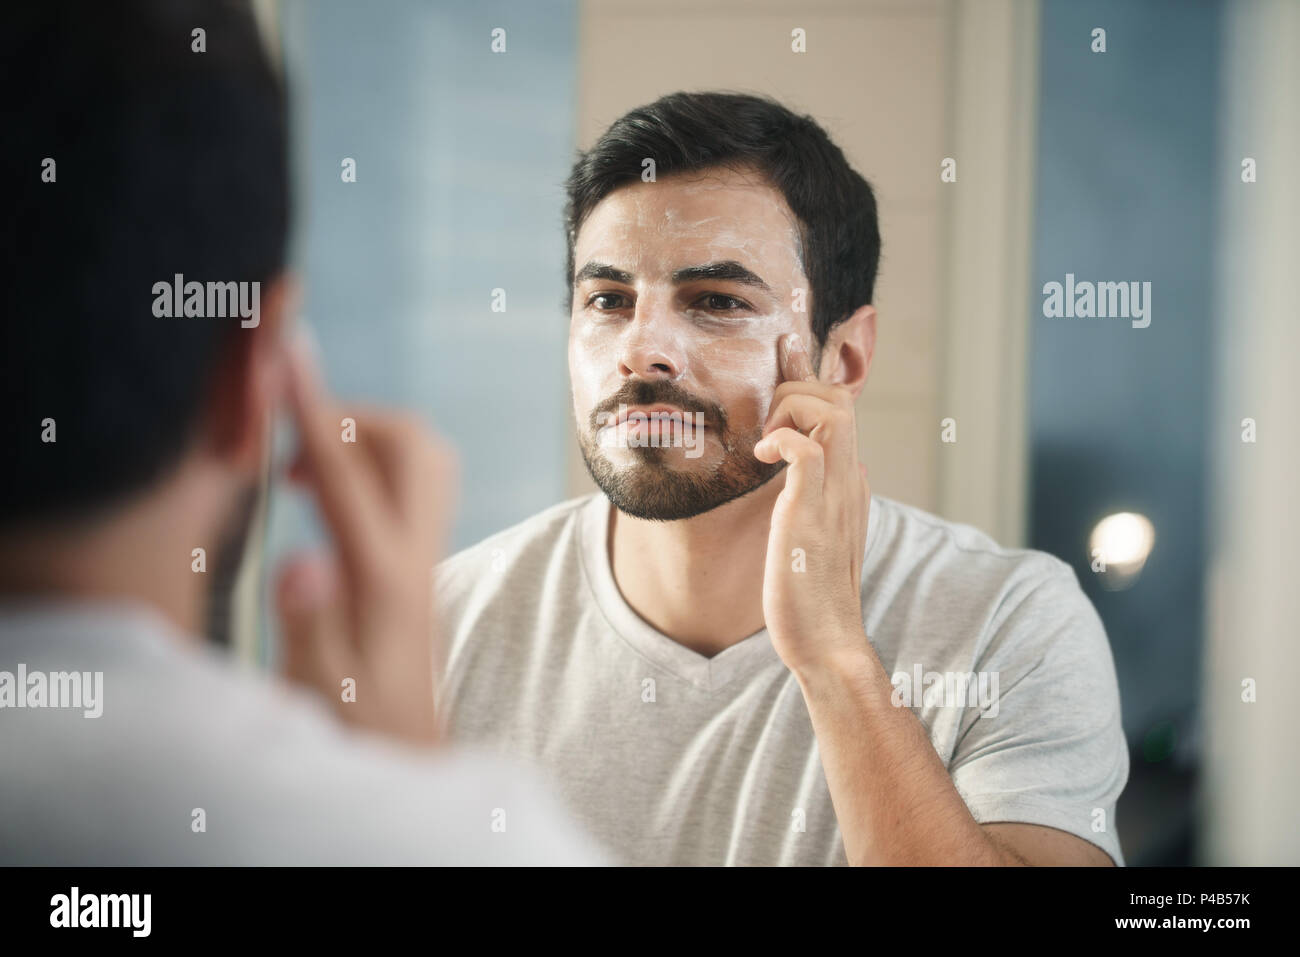 Young hispanic people and male beauty. Metrosexual man applying lotion for anti-aging treatment around eye - Stock Image